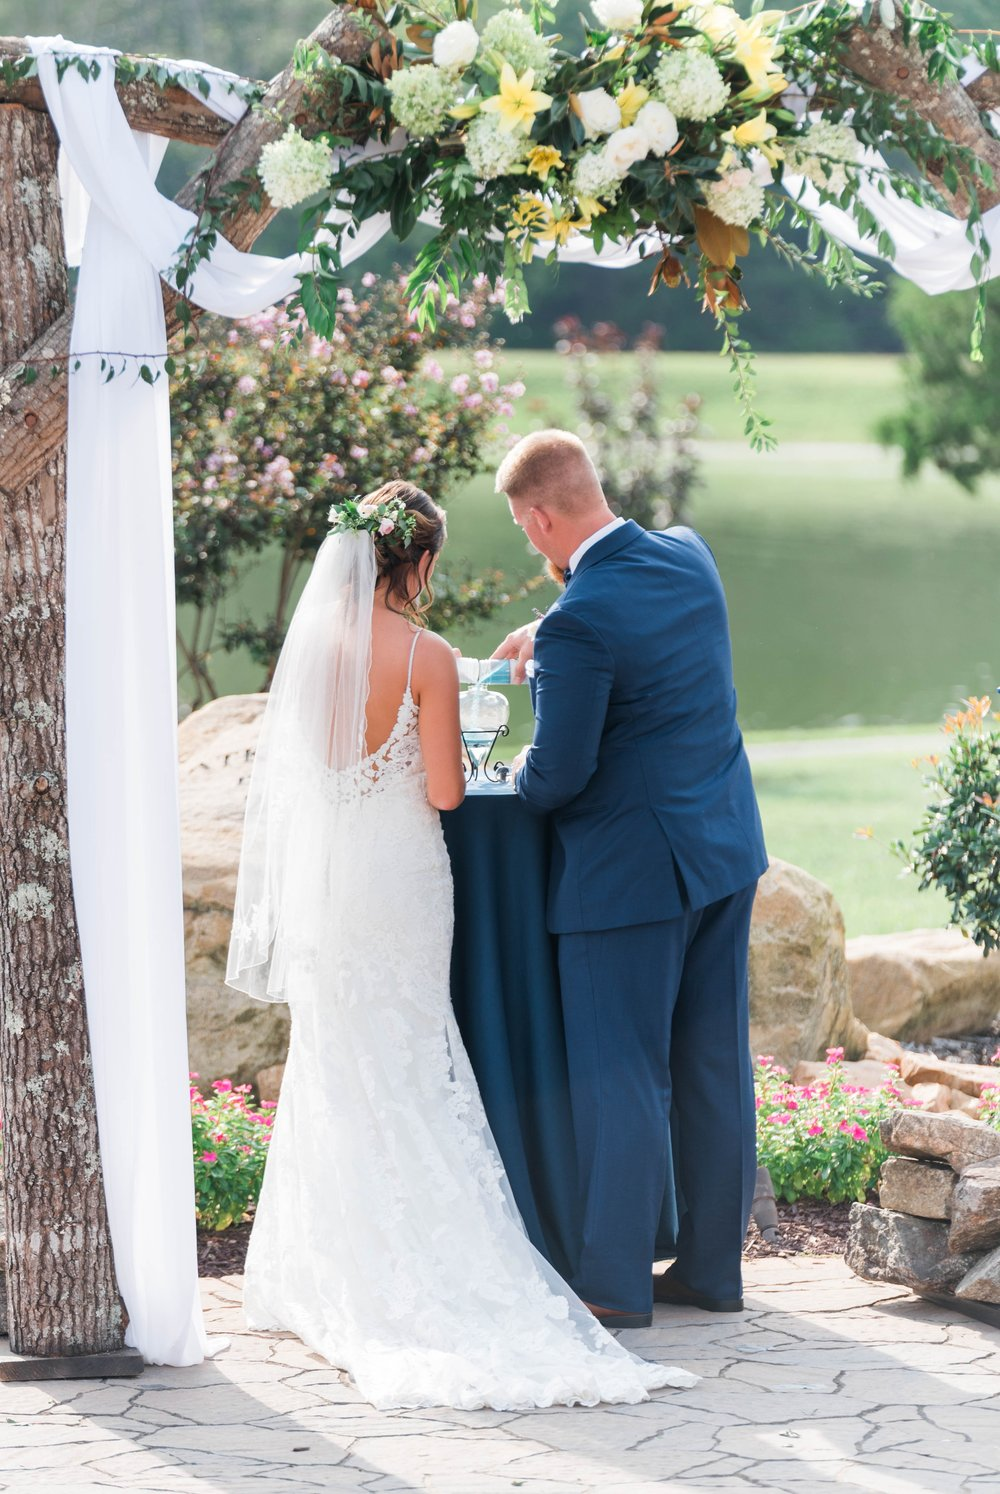 atkinson farms_VirginiaWeddingPhotographer_LynchburgWeddingPhotographer_DylanandLauren 7.jpg